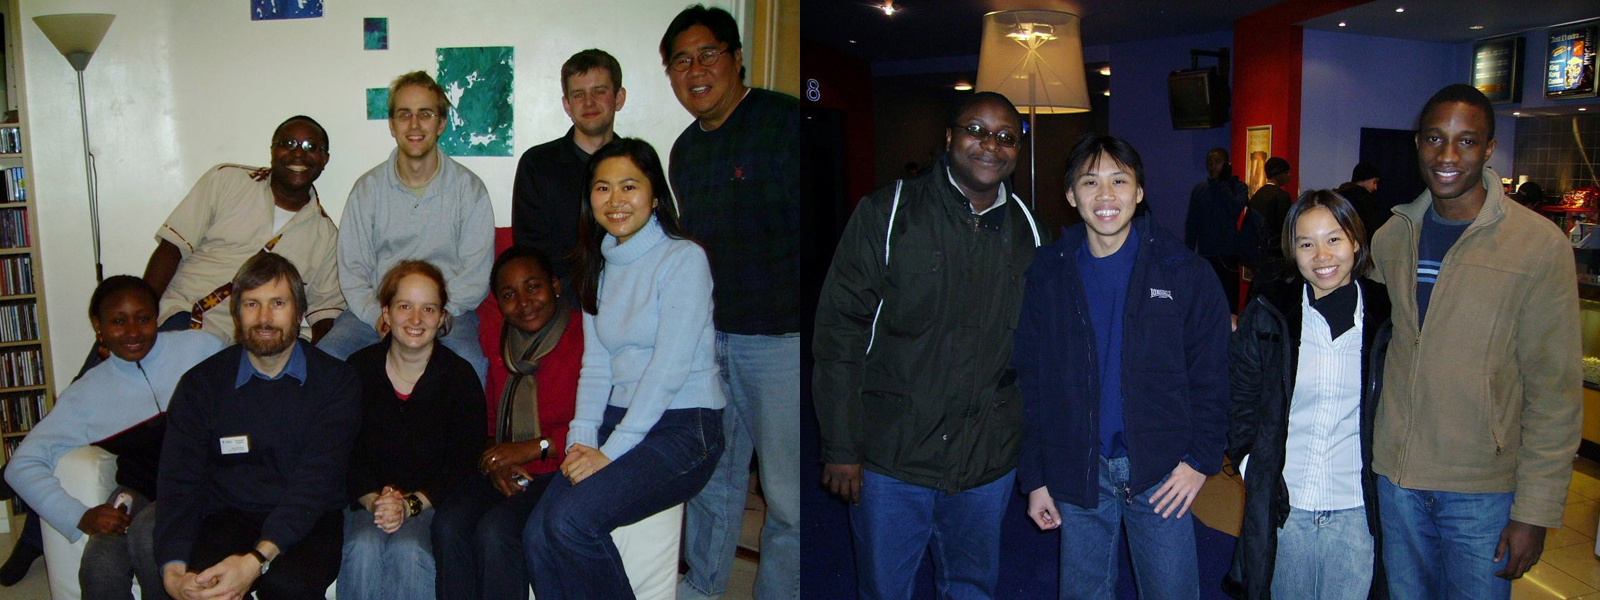 Nana and other international students socialising in Nottingham